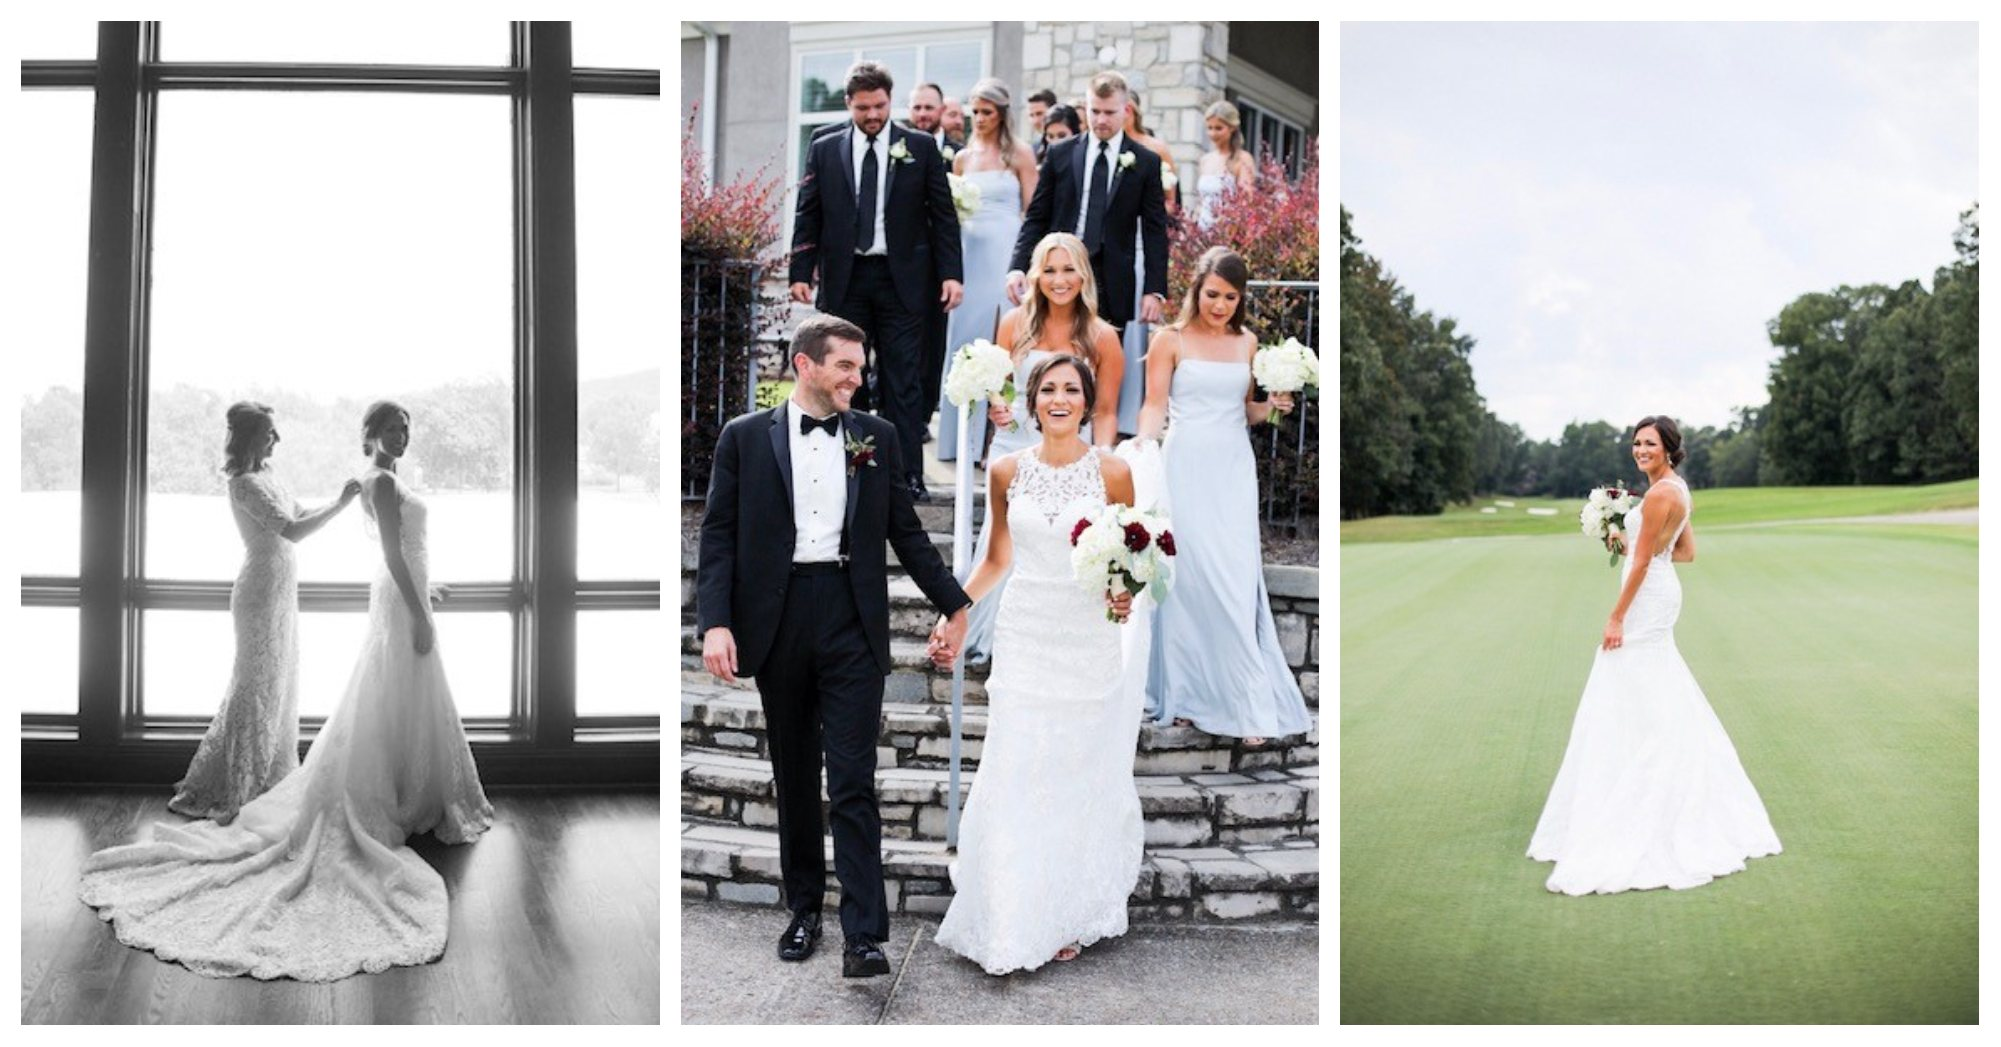 Renee Nicholas Wedding Reception – wedding party header – Greystone G&CC